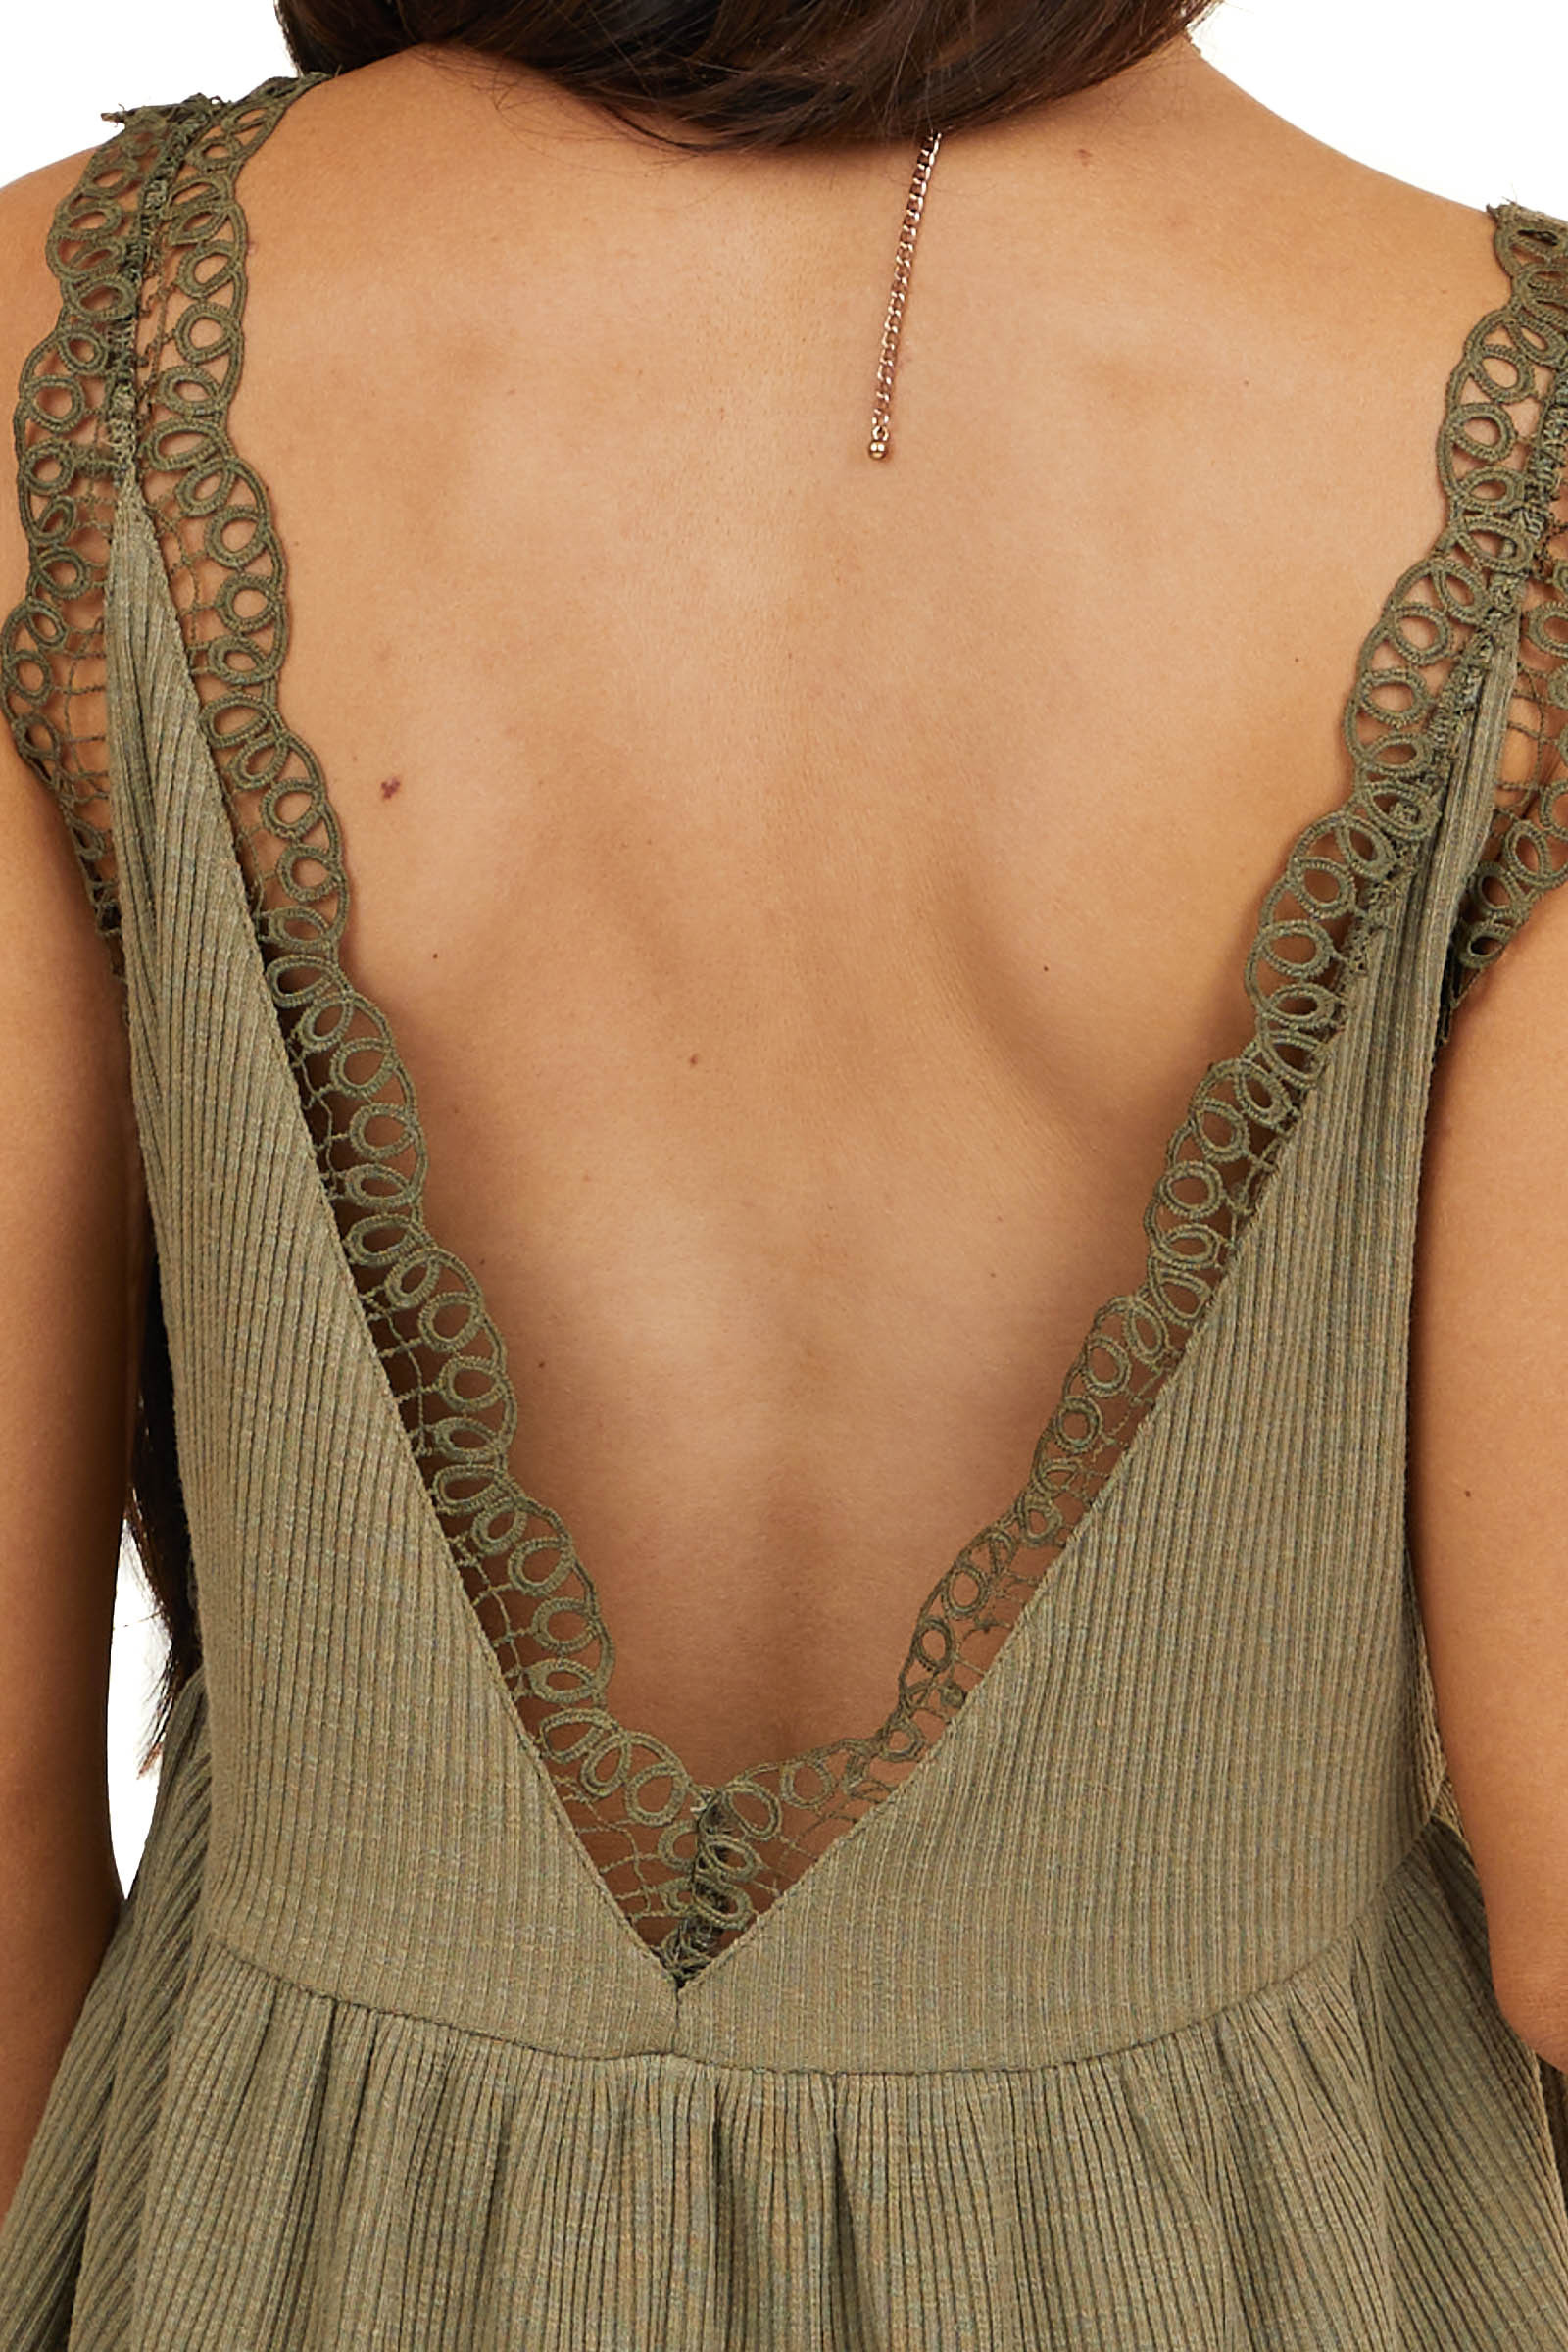 Dusty Olive V Neck Tank Top with Crochet Lace Trim